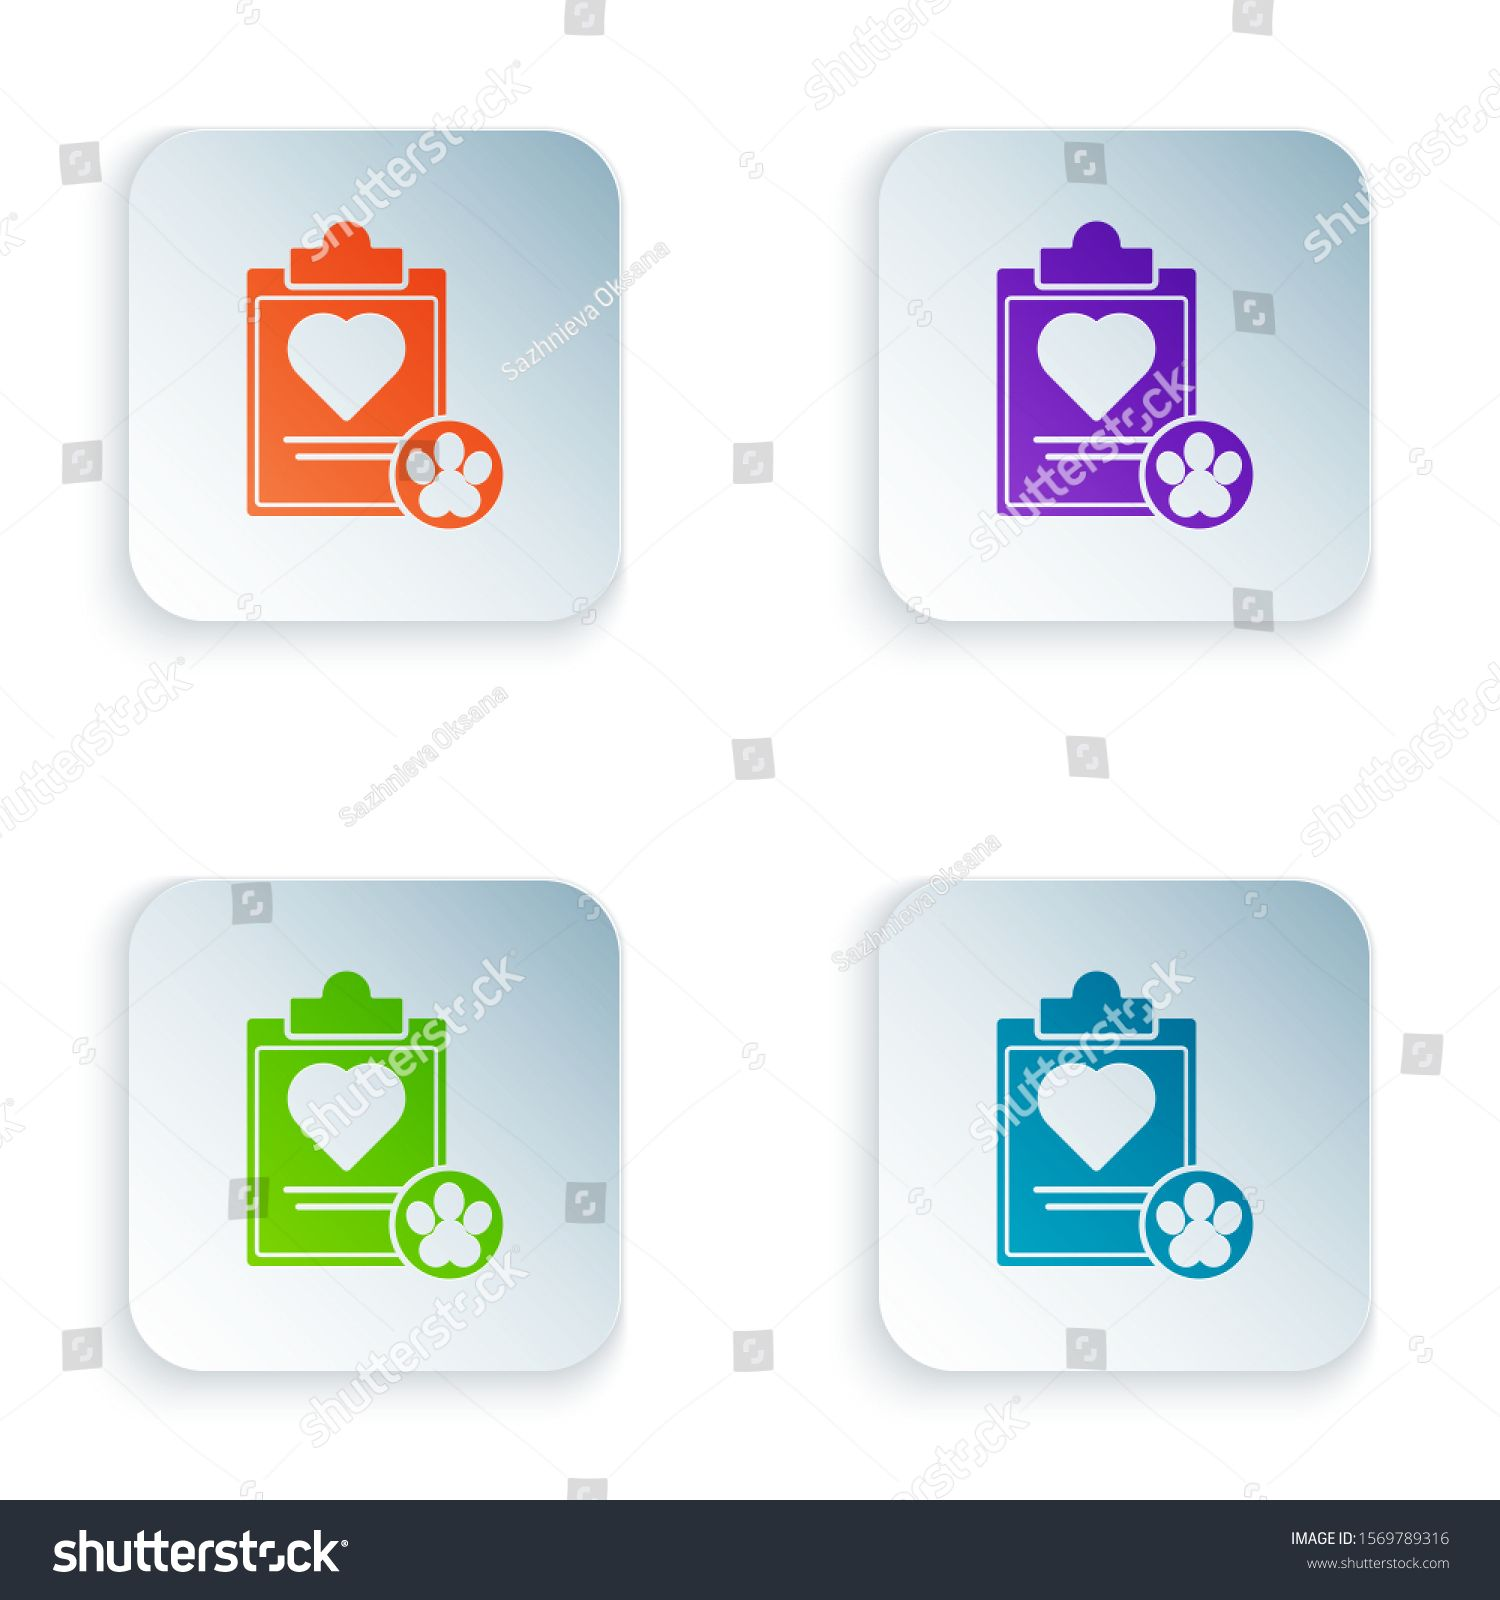 Color Clipboard With Medical Clinical Record Pet Icon Isolated On